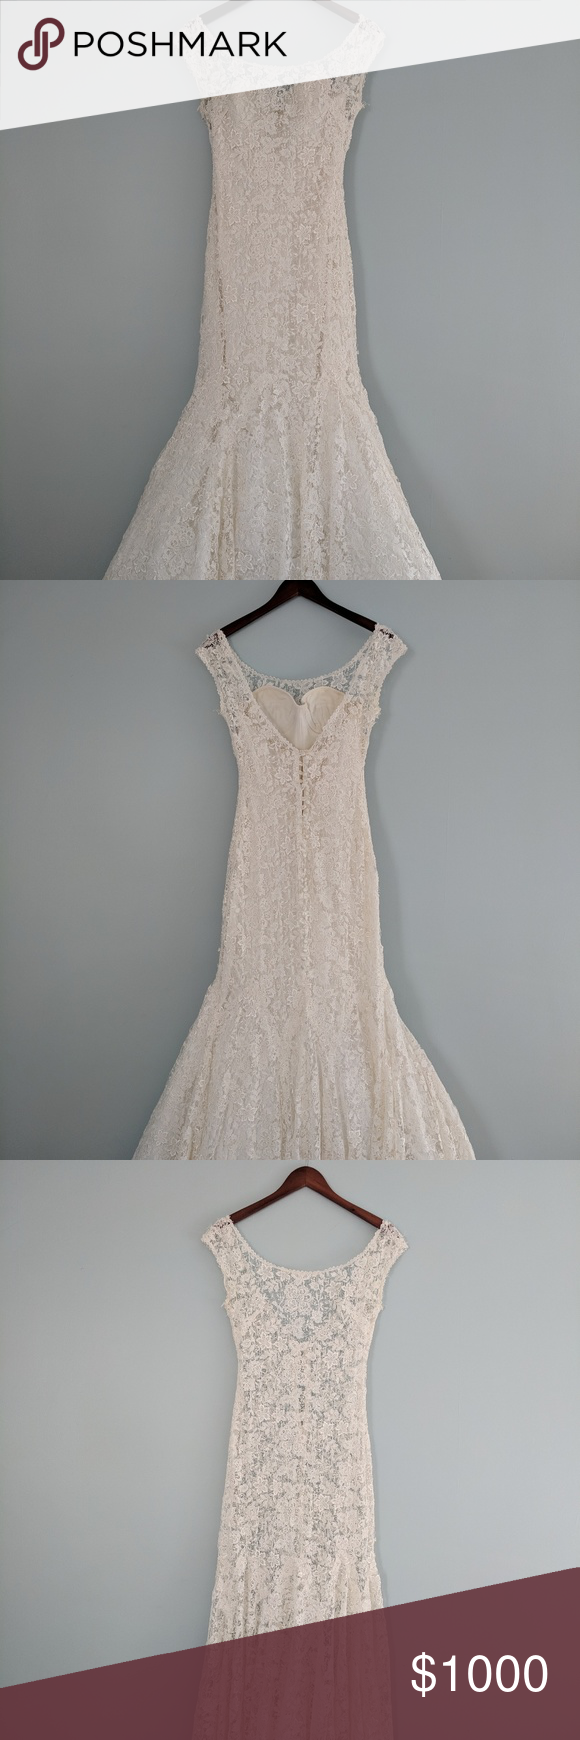 Timeless lace wedding gown This Lela Rose gown (two parts)is by far the most unique and elegant wedding dress one can find. The intricate lace design for the overlay is exquisitely unique. The full bodice gown is simple and sweet, very flattering to the body. This dress will absolutely make you soar on your wedding day.  A two inch piece of fabric was added near the zipper in the back and is easily removable if necessary. Listed as size 8, but fits like a size 6. Color is Ivory. Lela…